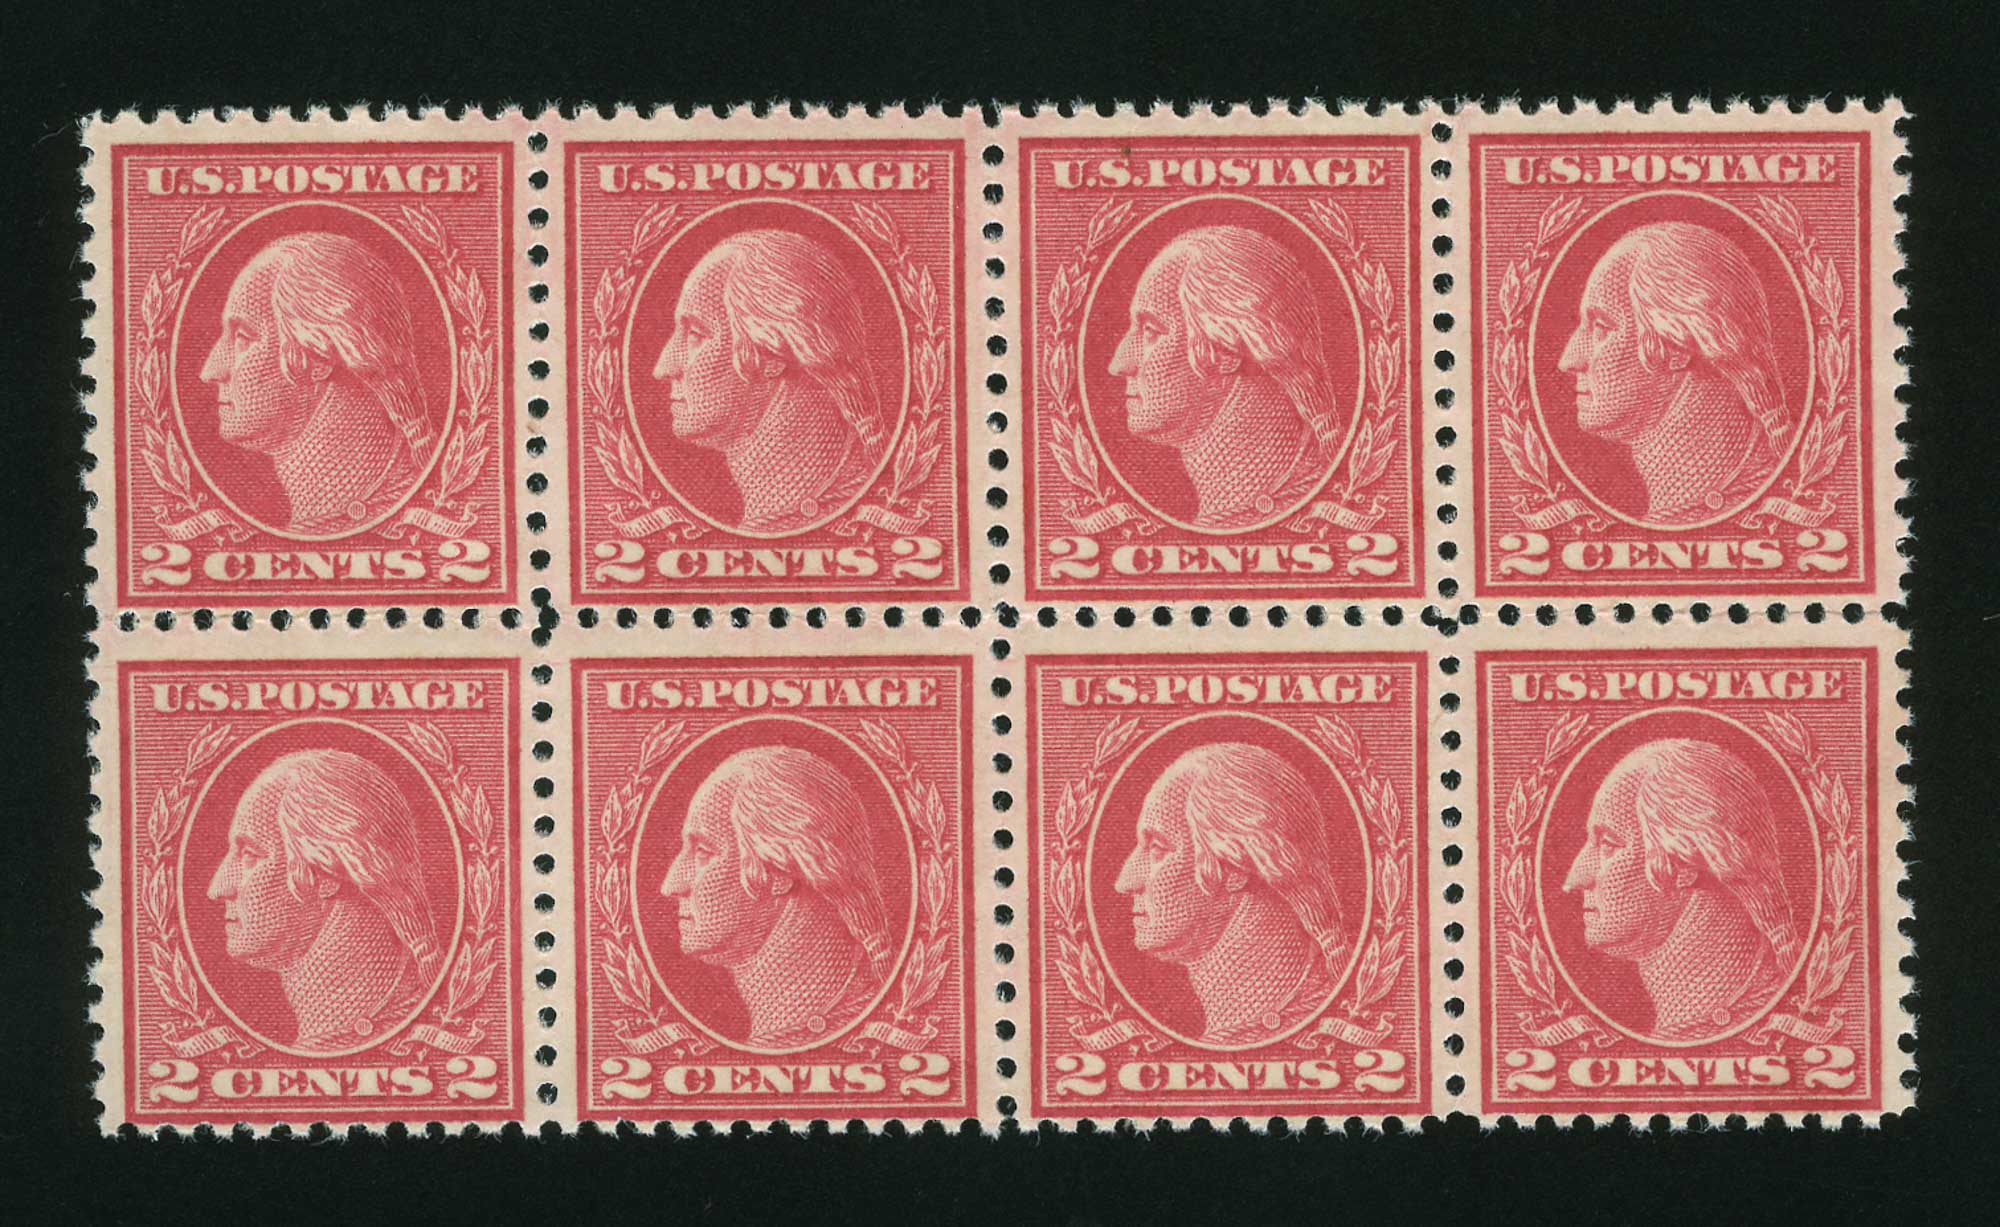 Lot image - United States 1917 2 Cents Deep Rose Scott 500